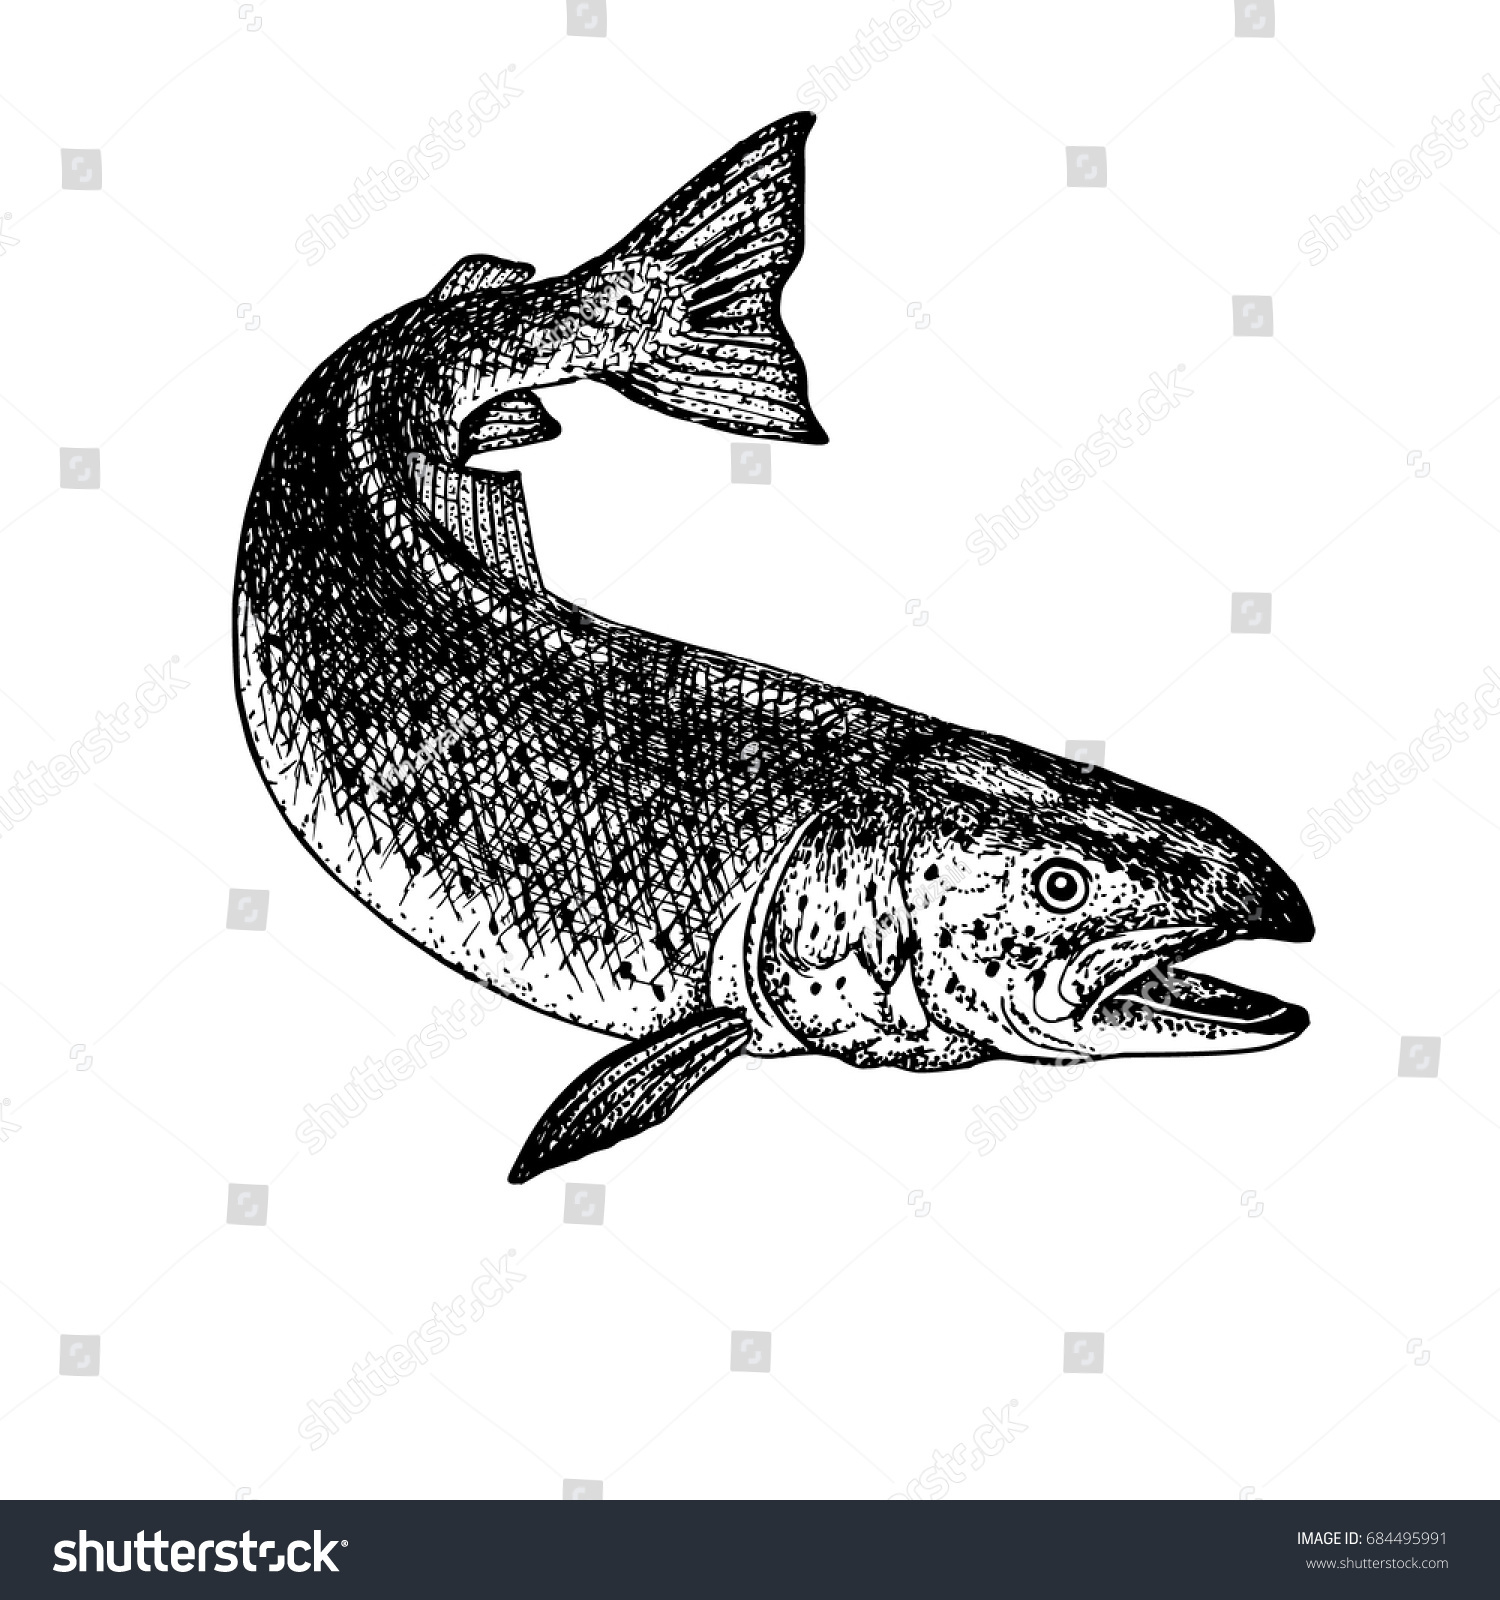 Stock vector ethnic animal doodle detail pattern killer whale - Hand Drawn Salmon Retro Sketch Isolated Vintage Hypster Image Doodle Line Graphic Design